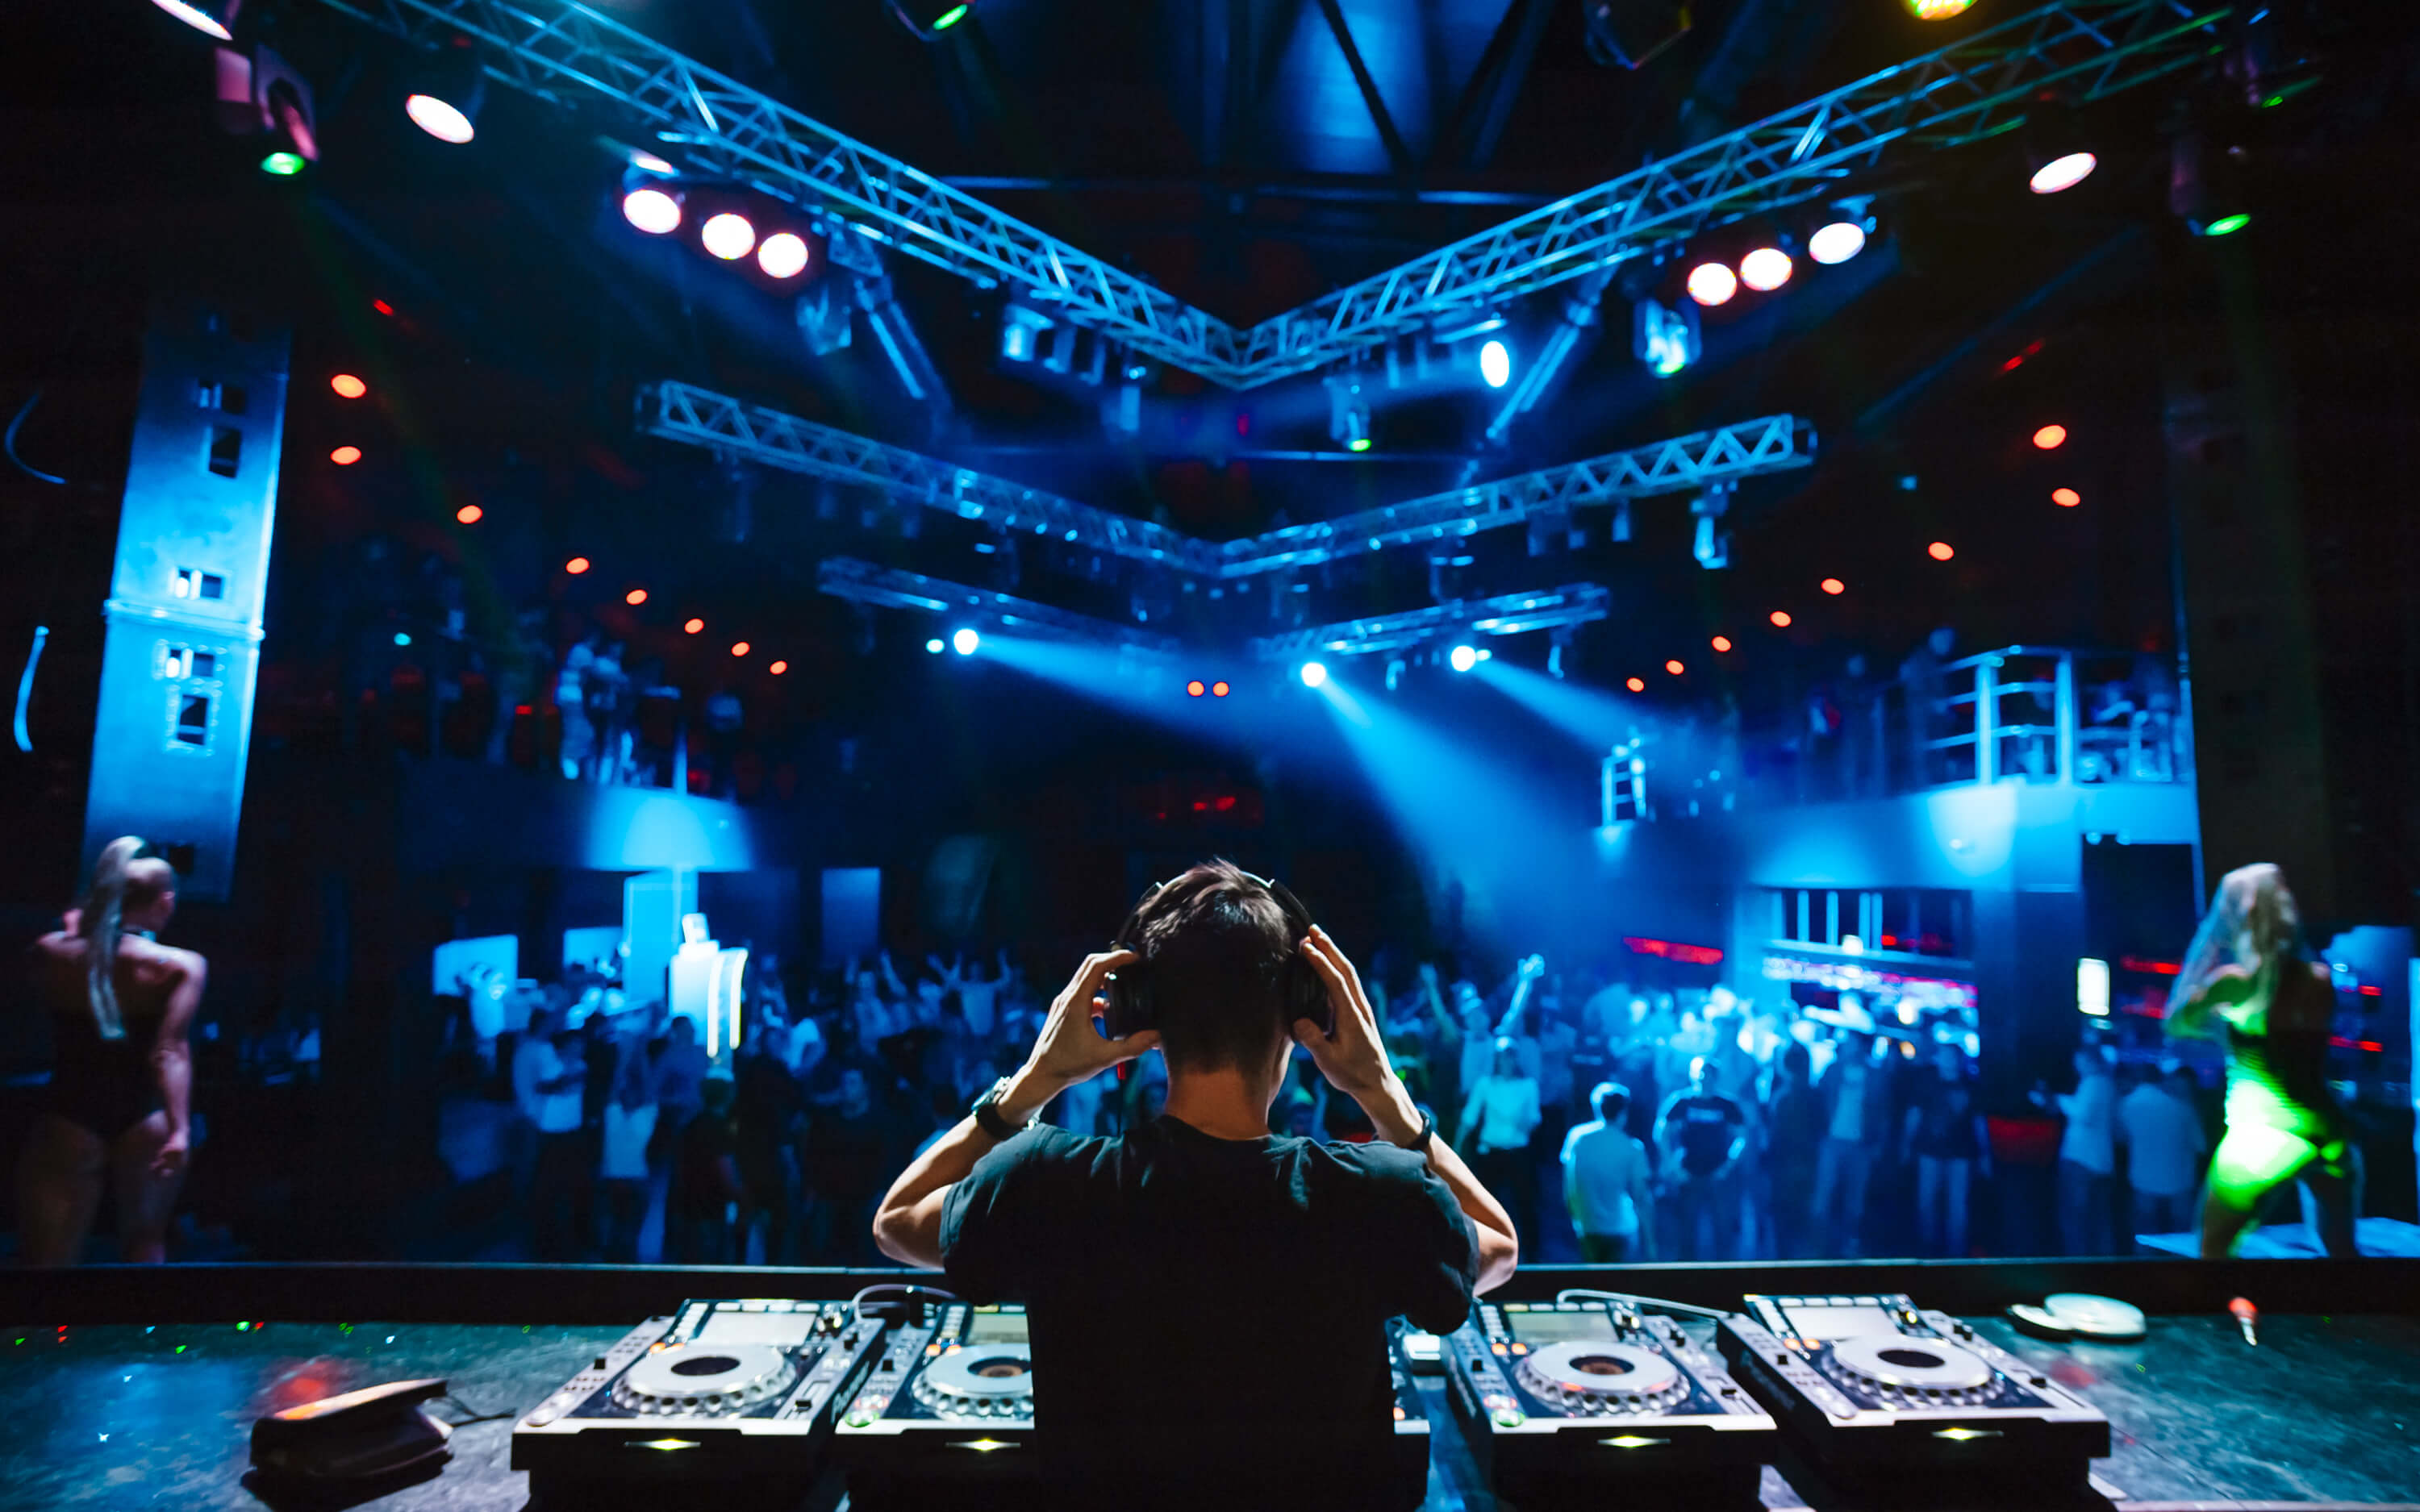 Nightclubs can now be taken to the virtual space. Source: Shutterstock.